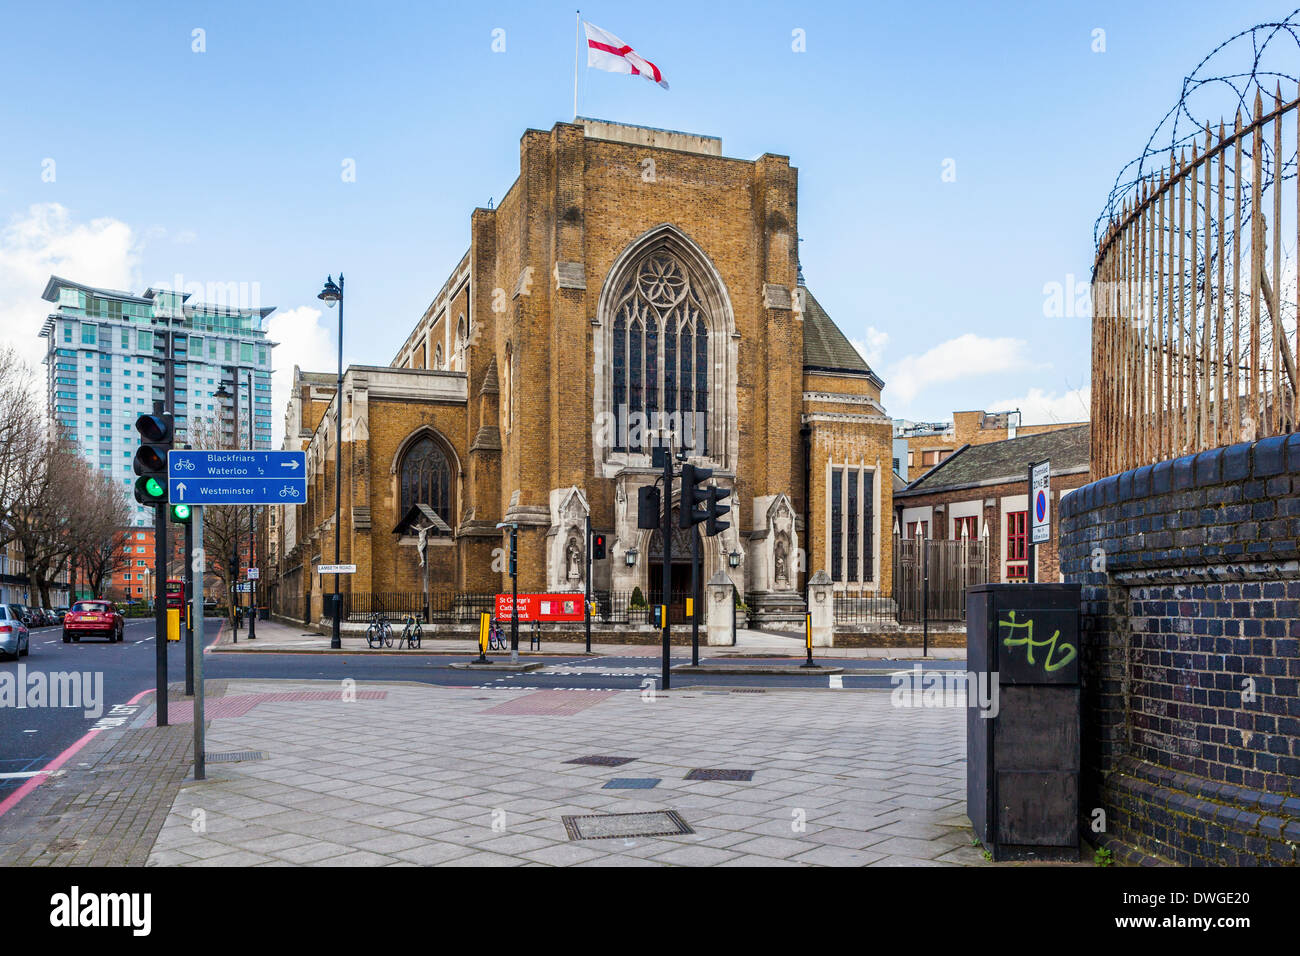 St George's Cathedral - brick and stone exterior of Roman Catholic church designed by Augustus Pugin, Southwark, London, SE1 - Stock Image